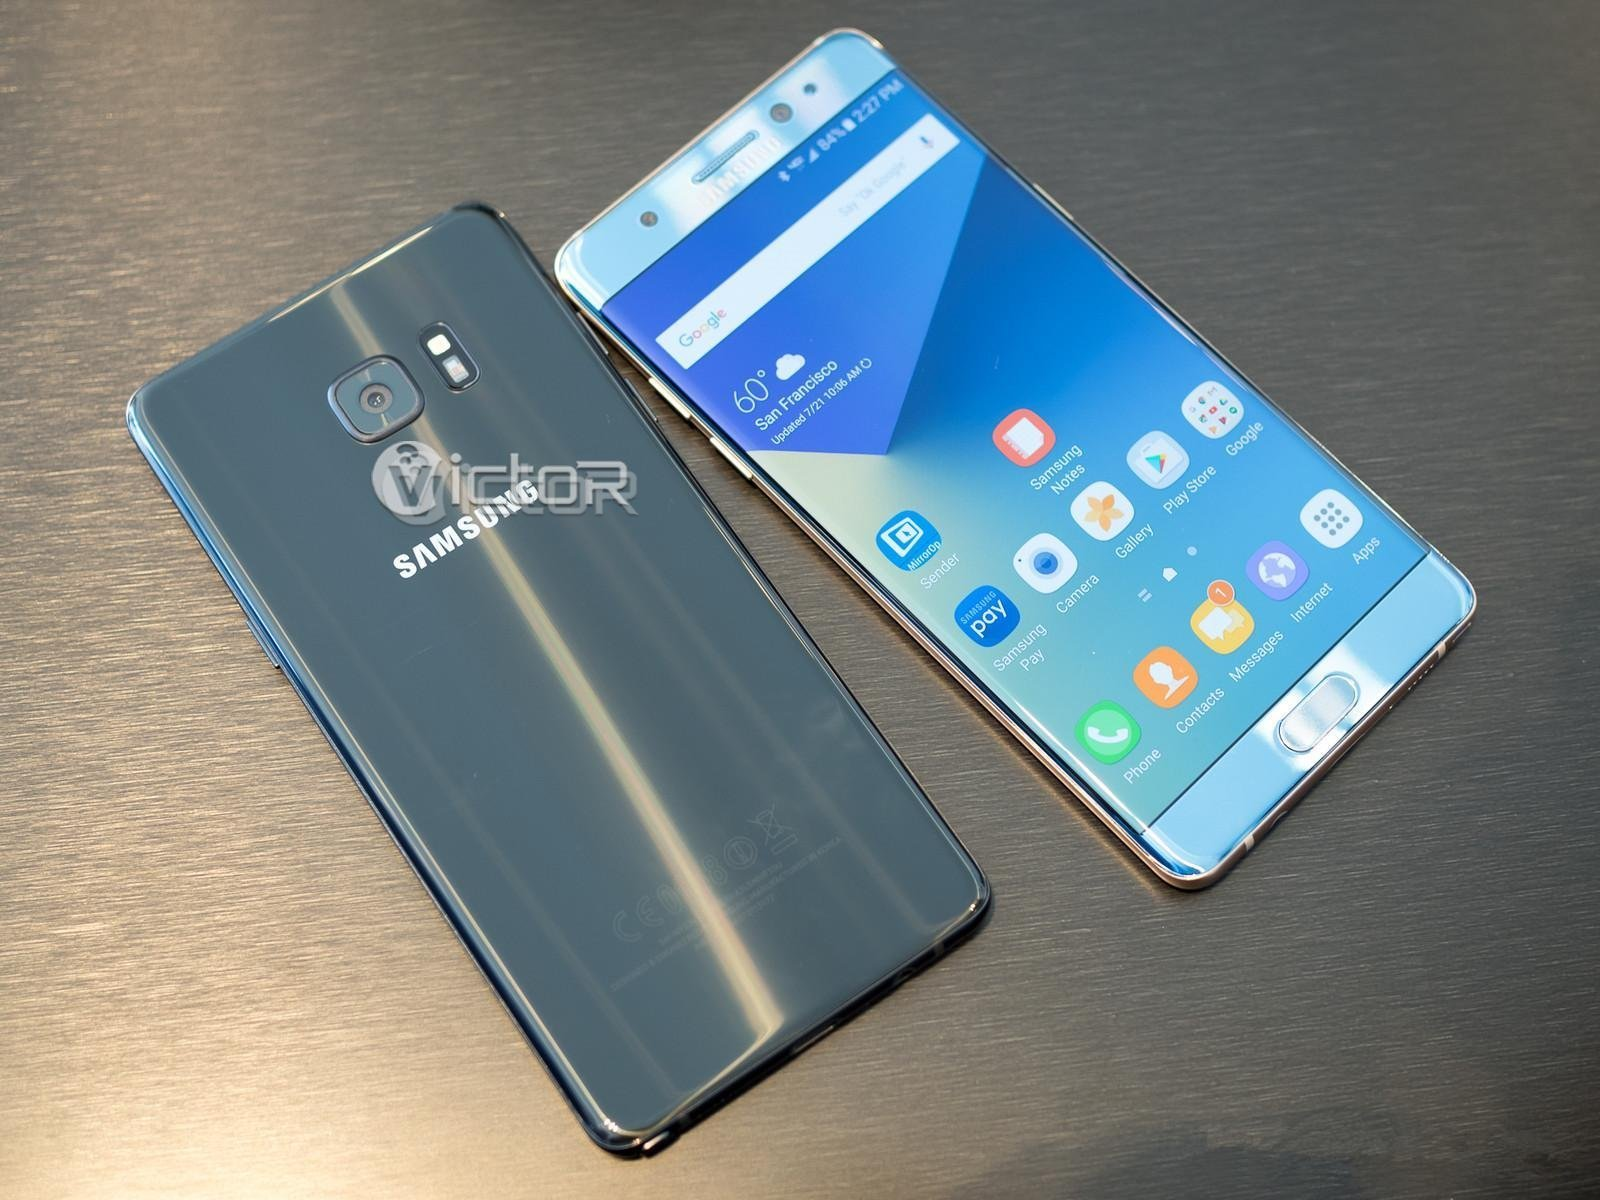 samsung galaxy note 7 - samsung note 7 - note 7 - 1